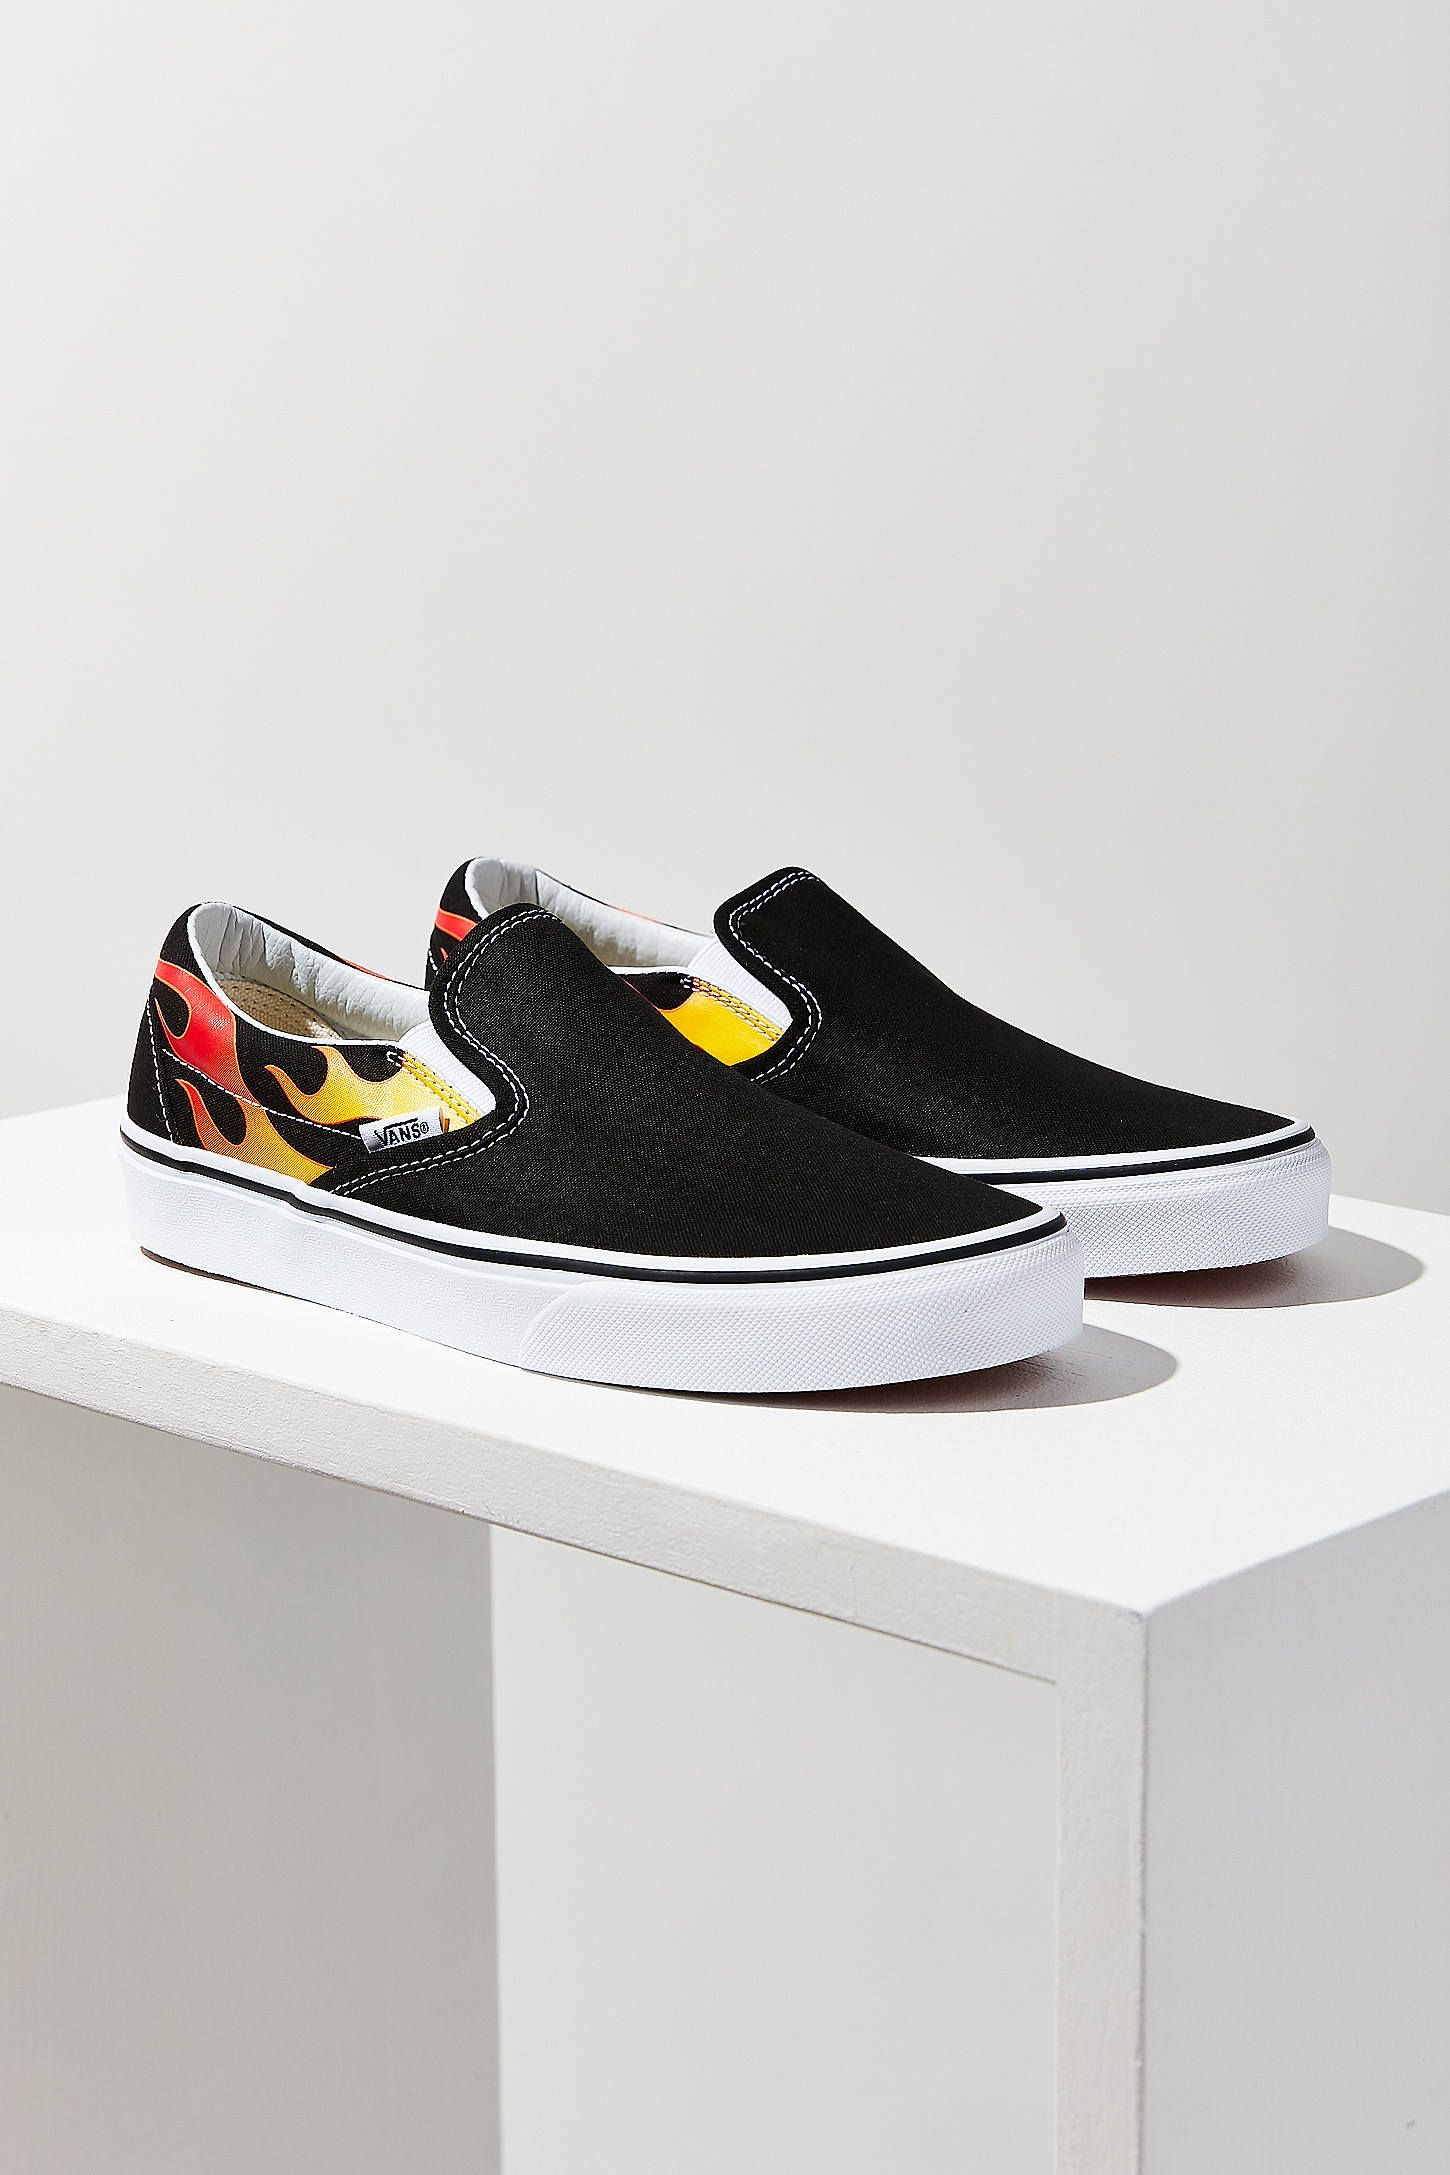 Slide View  1  Vans Flame Classic Slip-On Sneaker  c7445a1e7